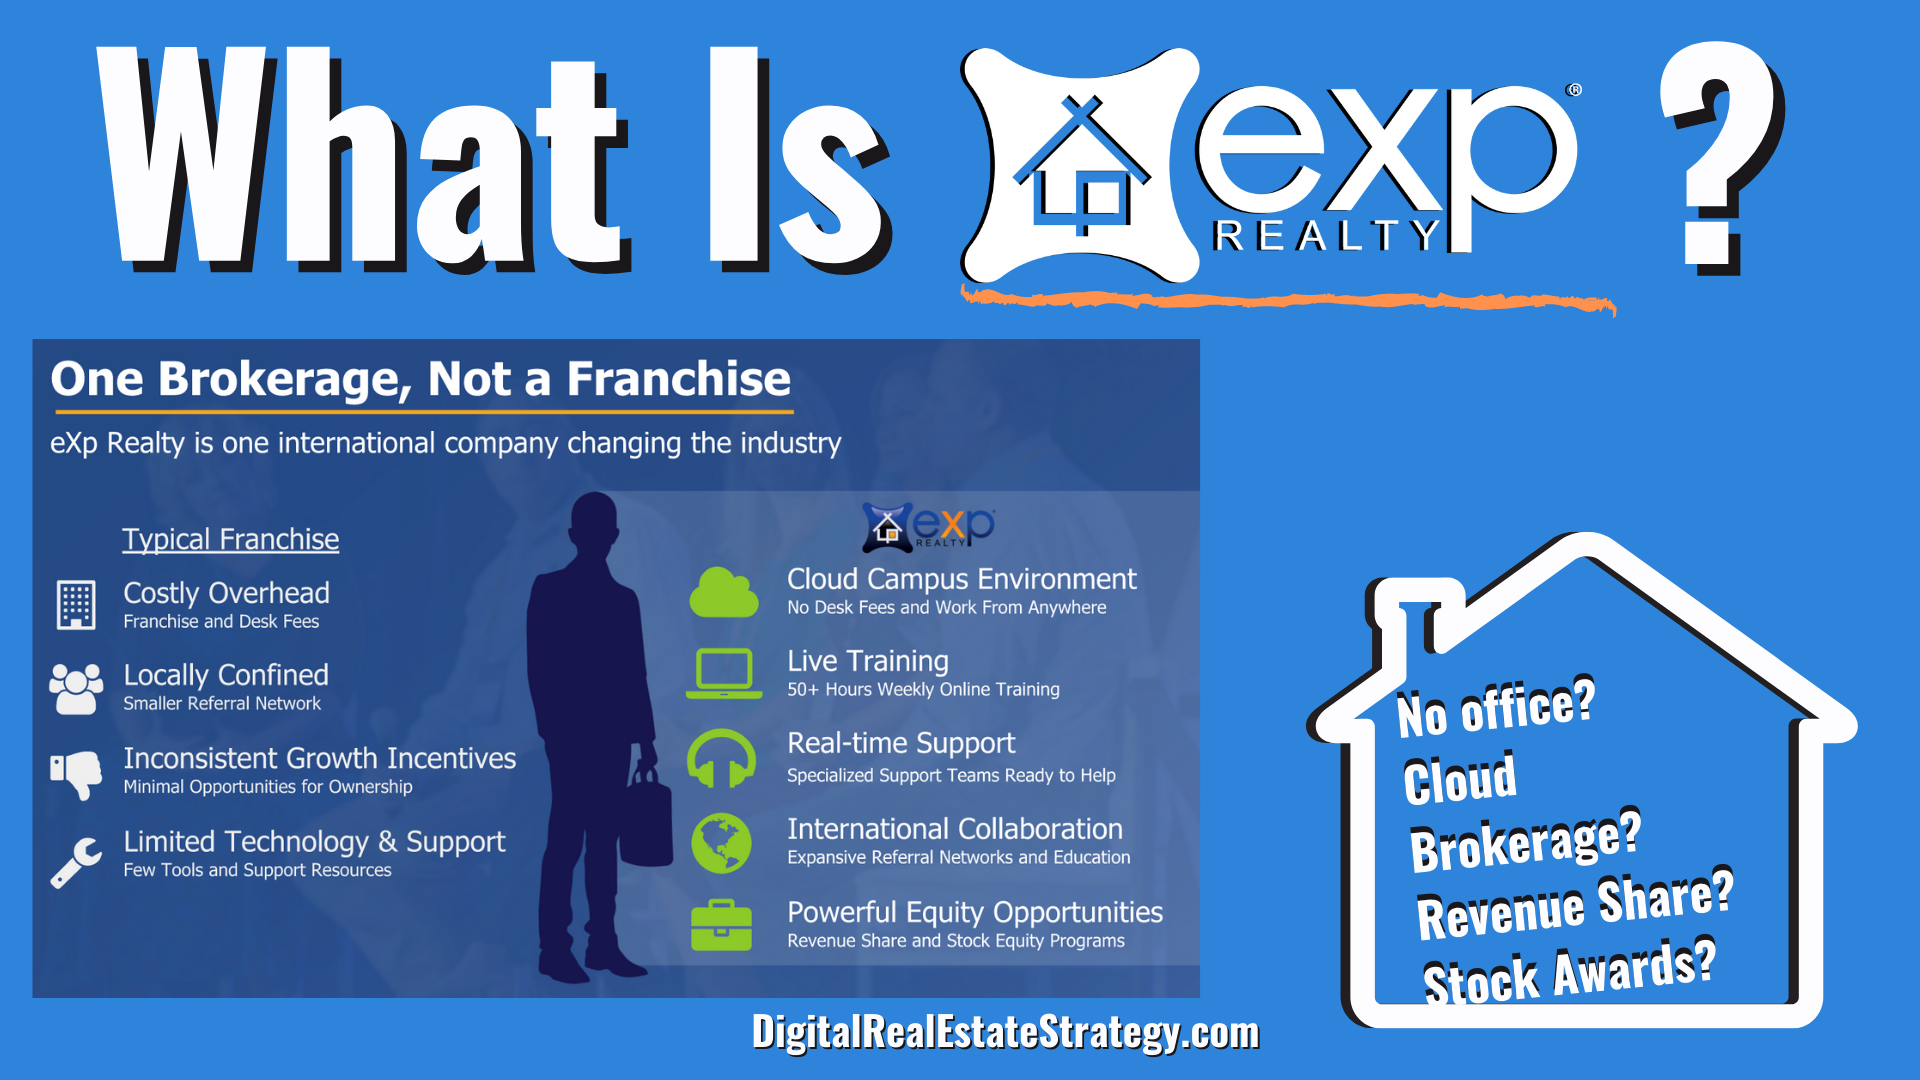 What Is eXp Realty Review - Jerome Lewis - eXp Realty Philadelphia - PA - Digital Real Estate Strategy